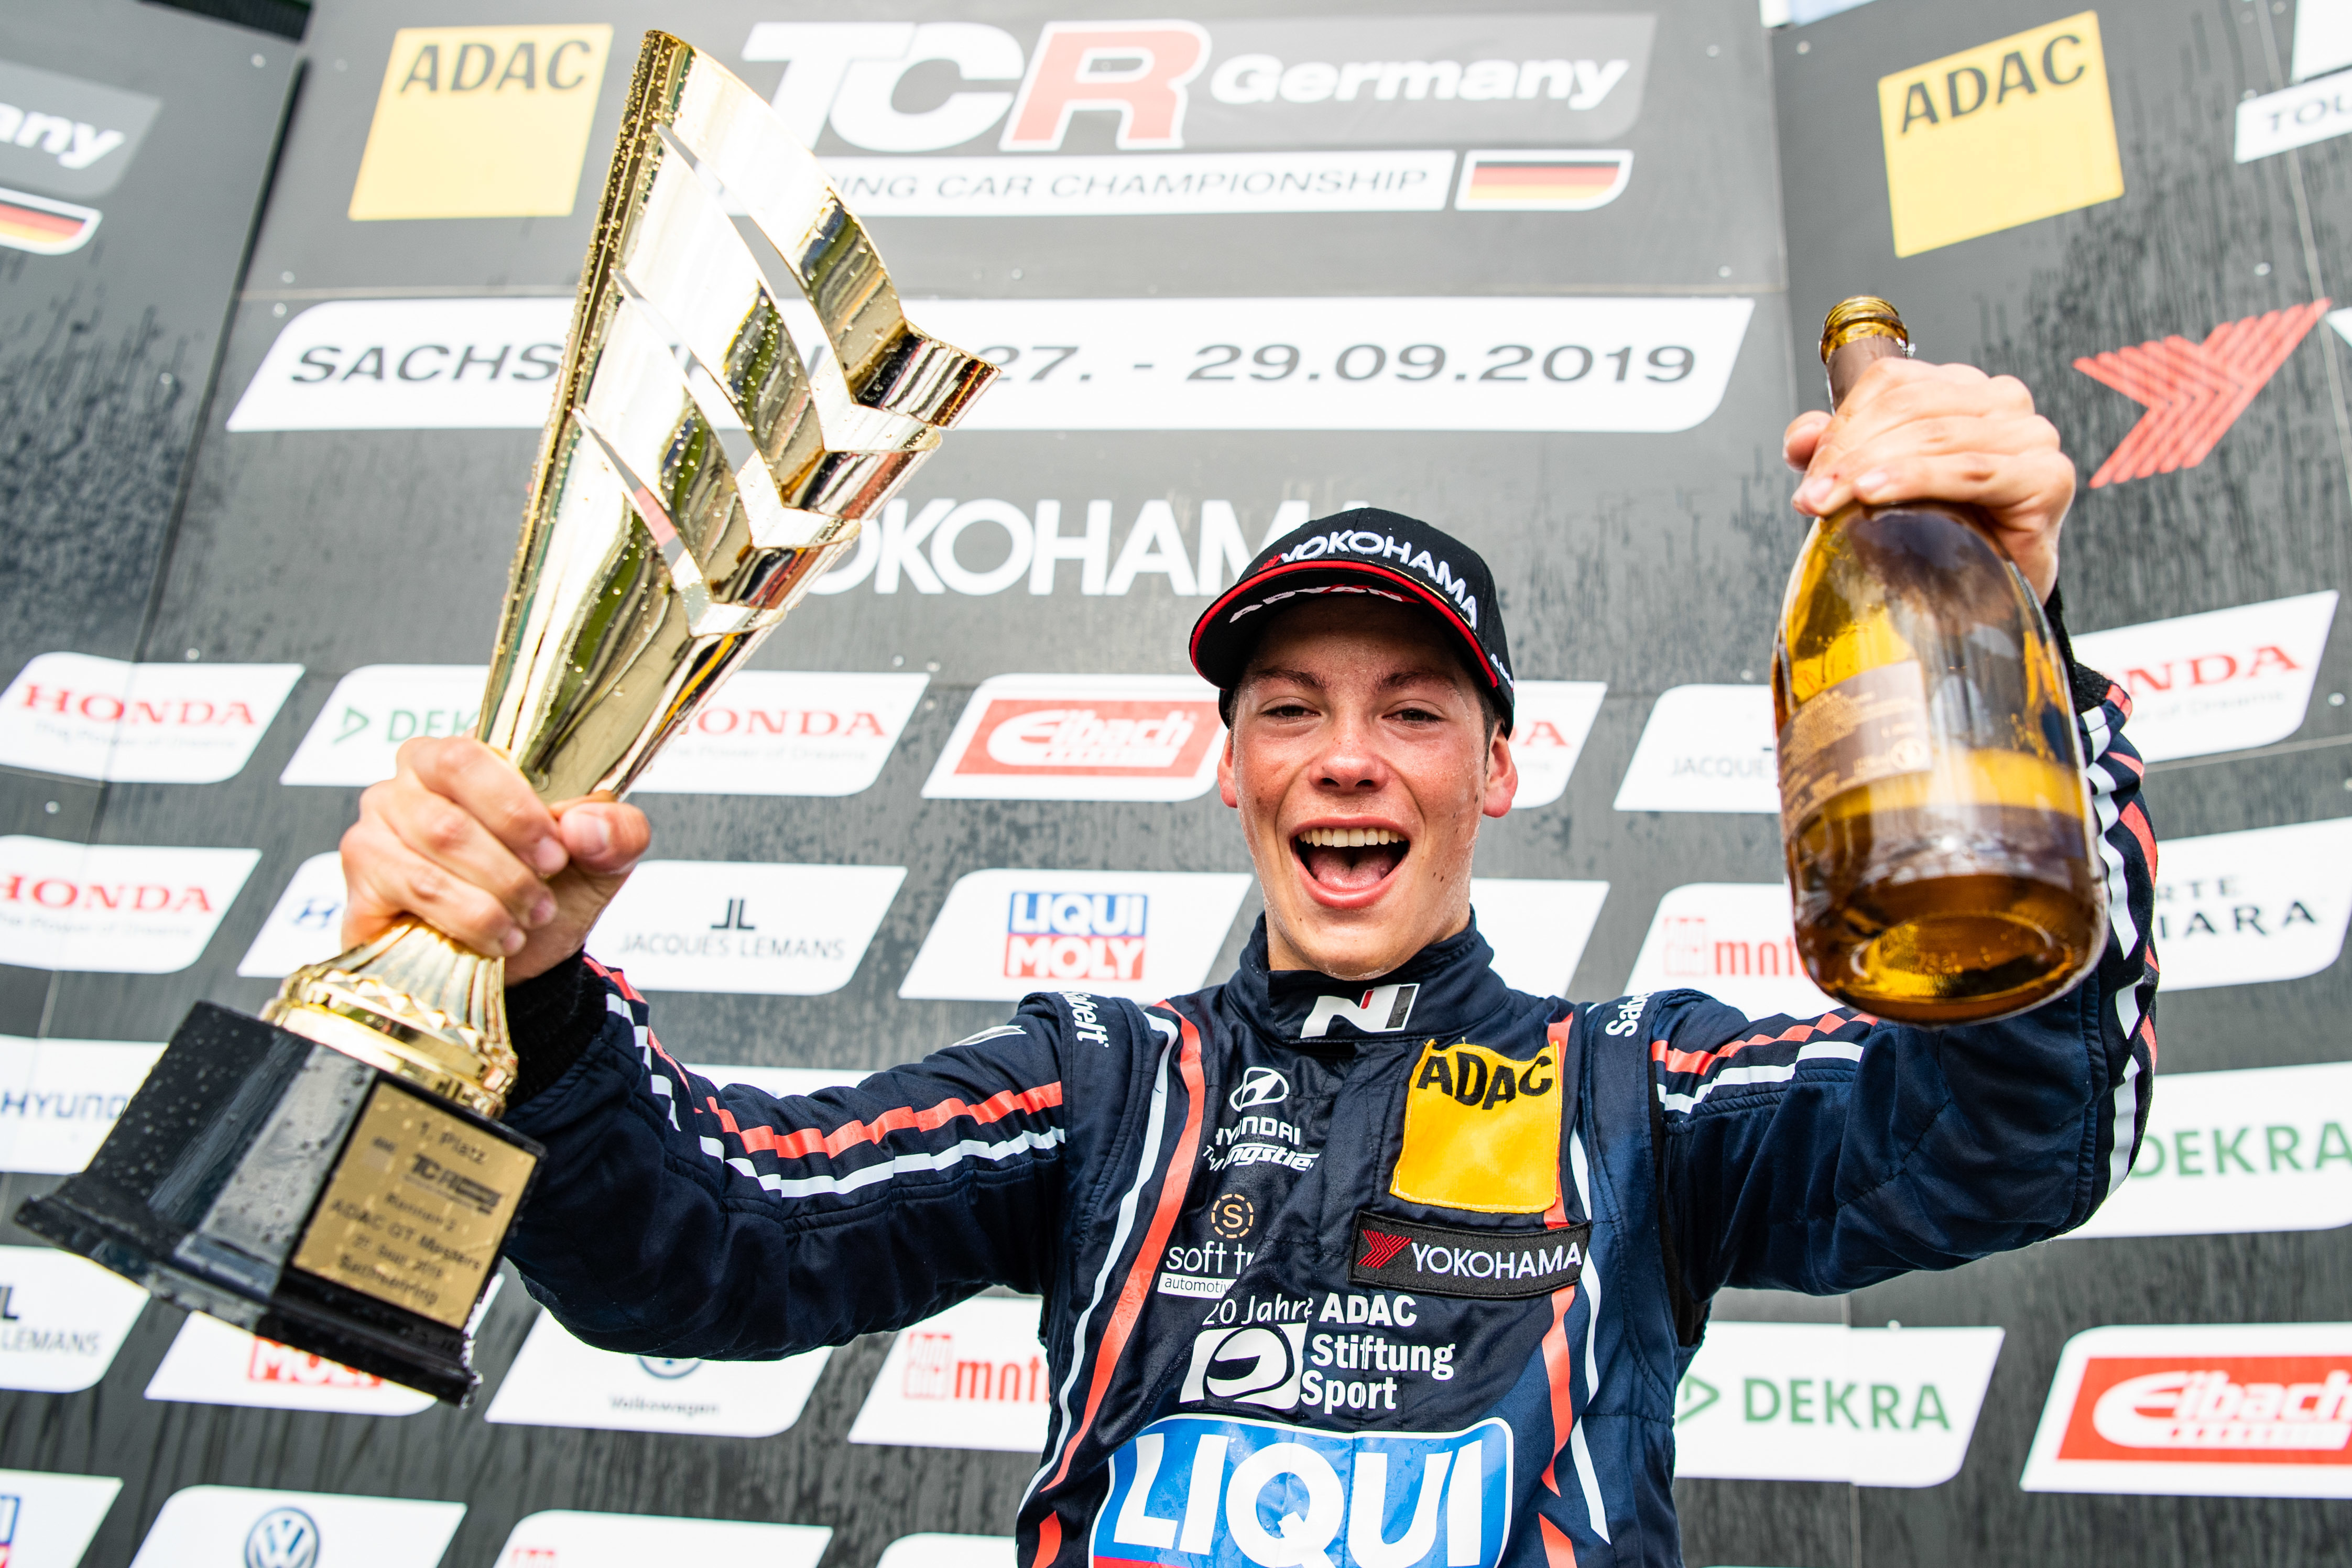 Max Hesse - TCR Germany